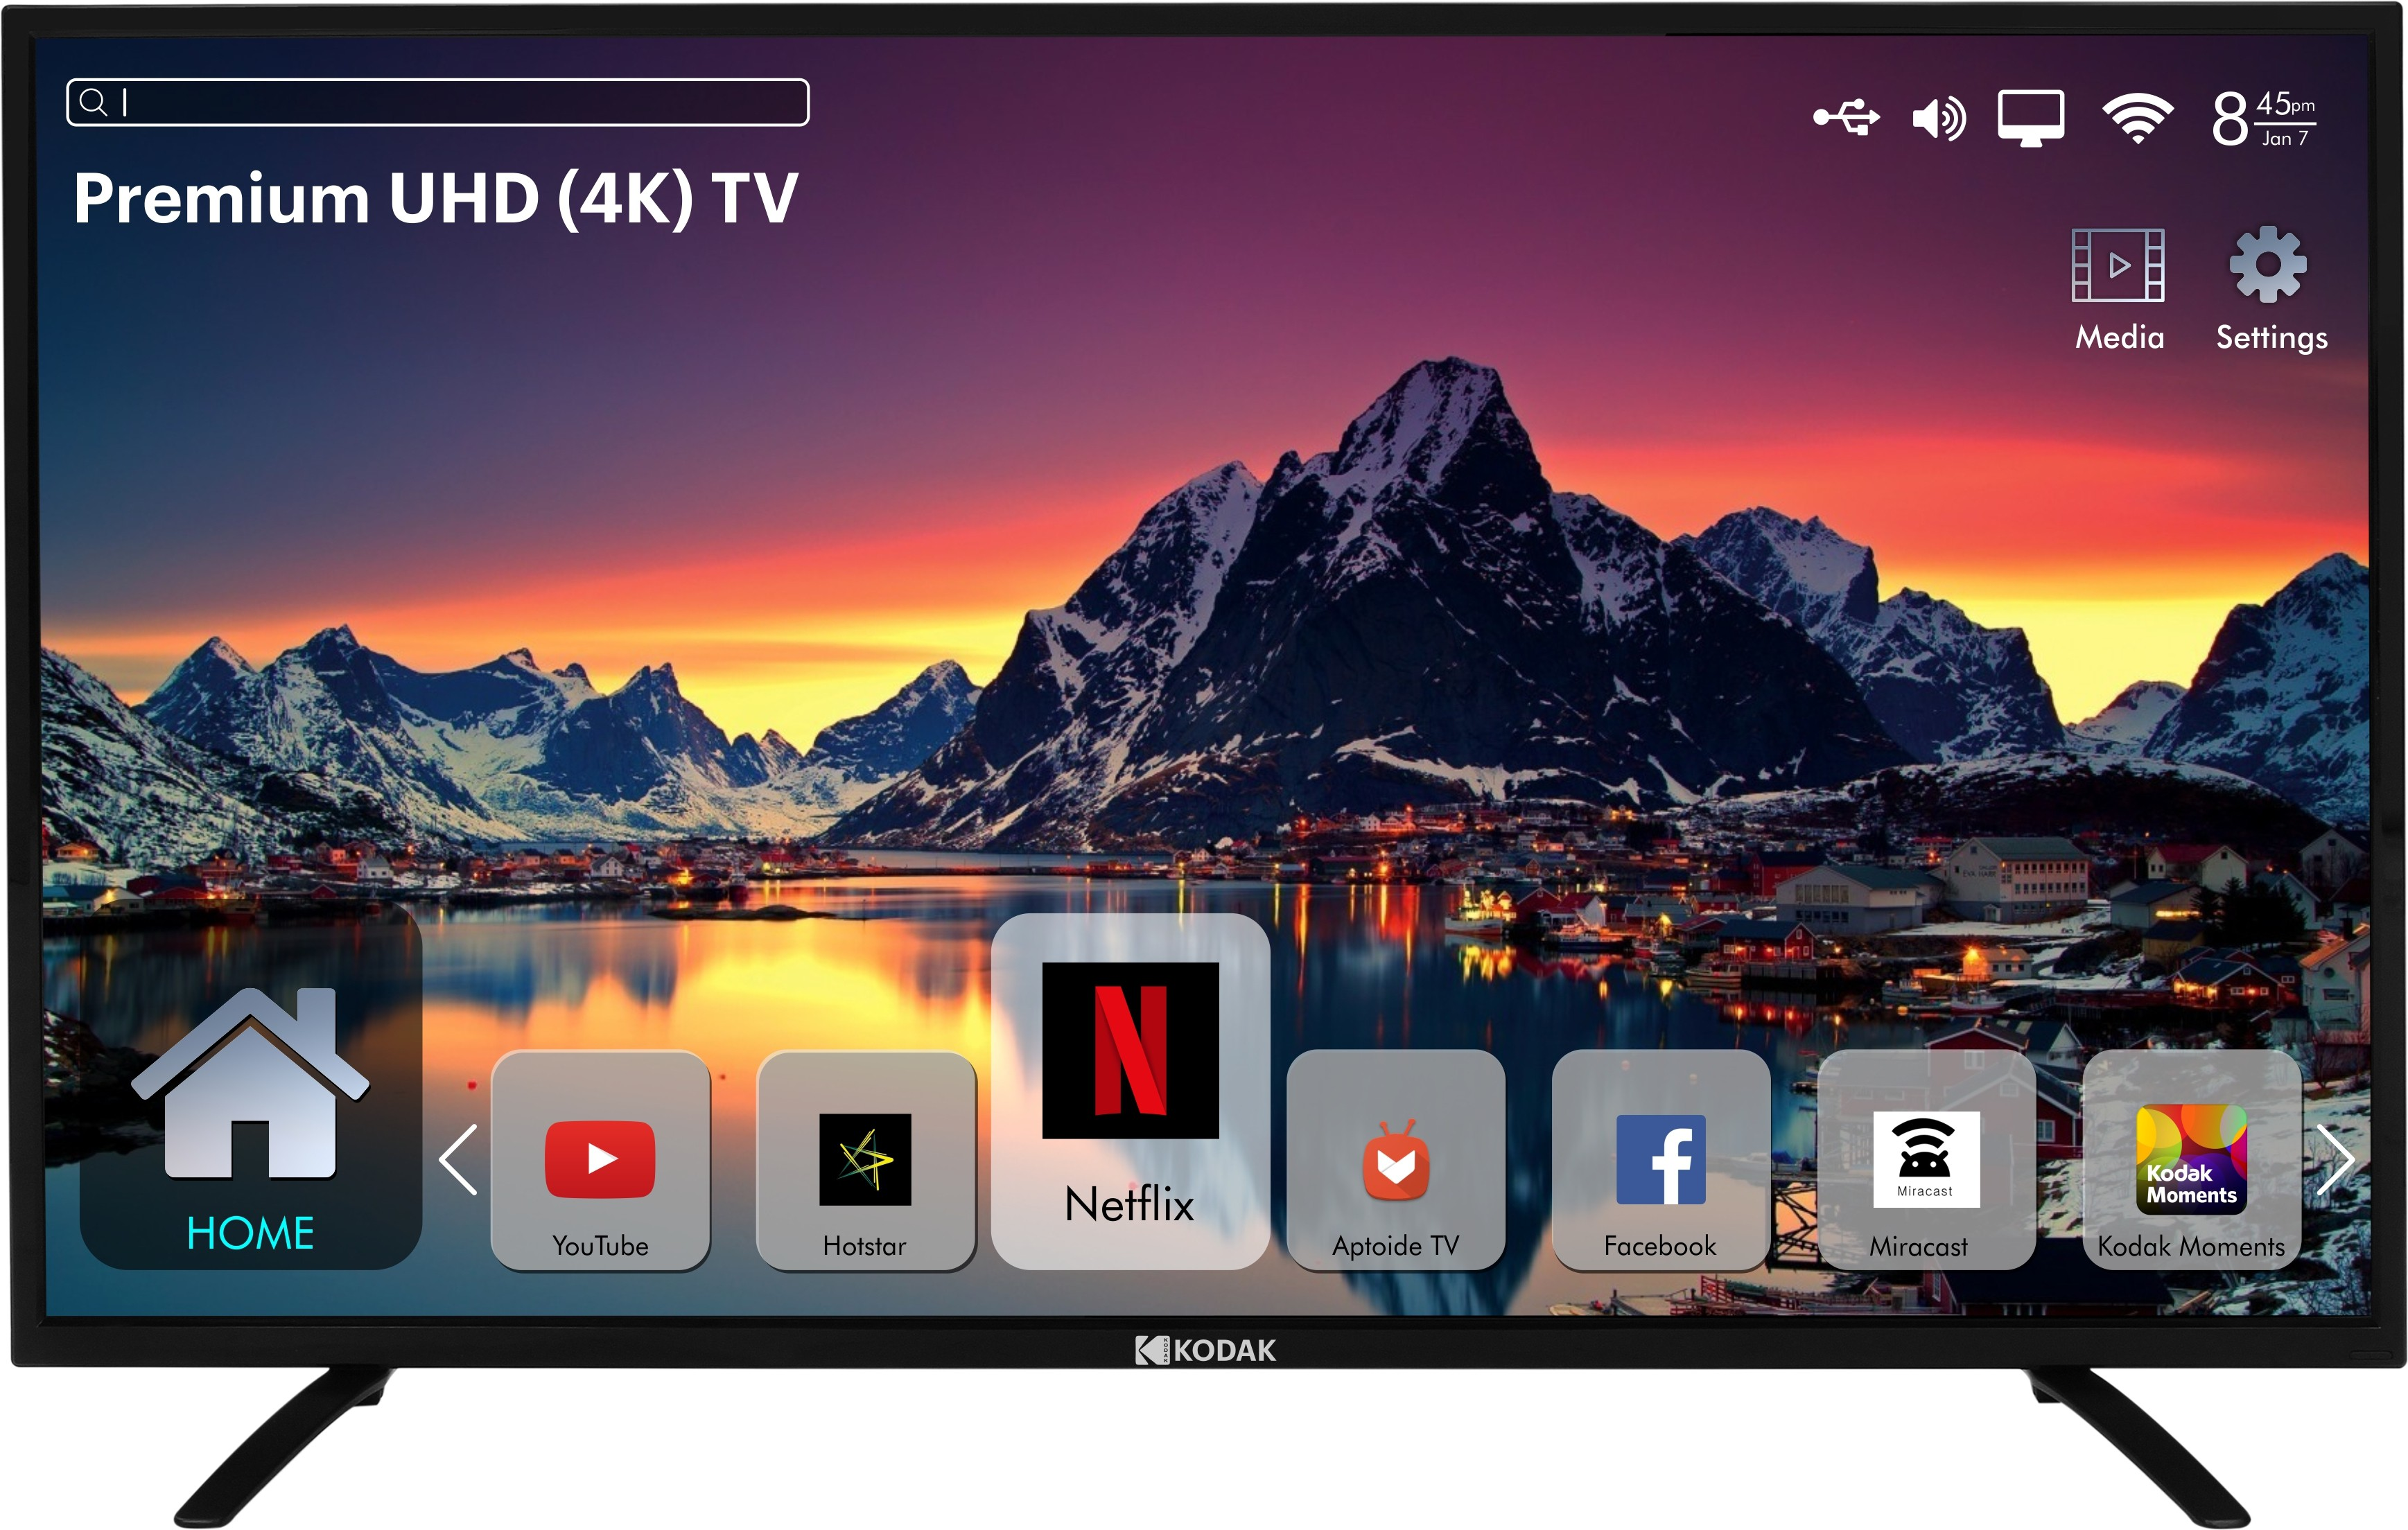 Kodak 140cm (55 inch) Ultra HD (4K) LED Smart TV Image